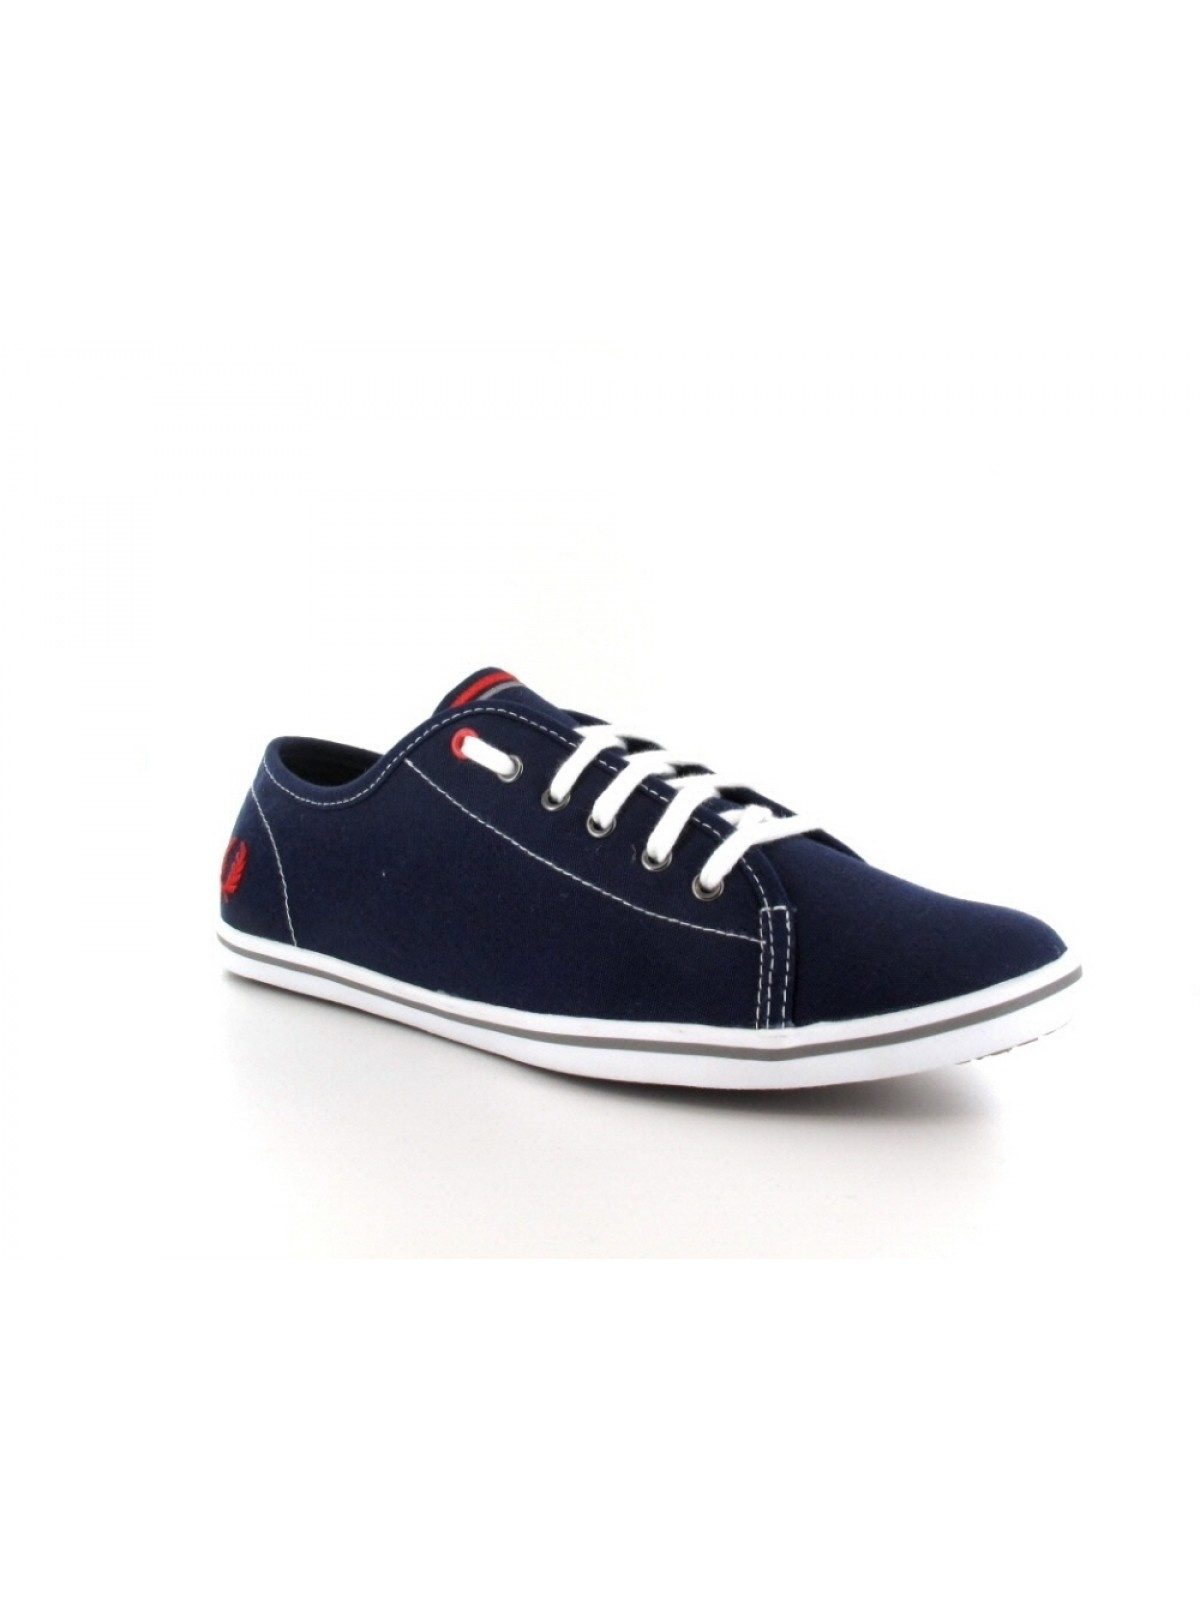 Fred Perry Phoenix toile navy / red